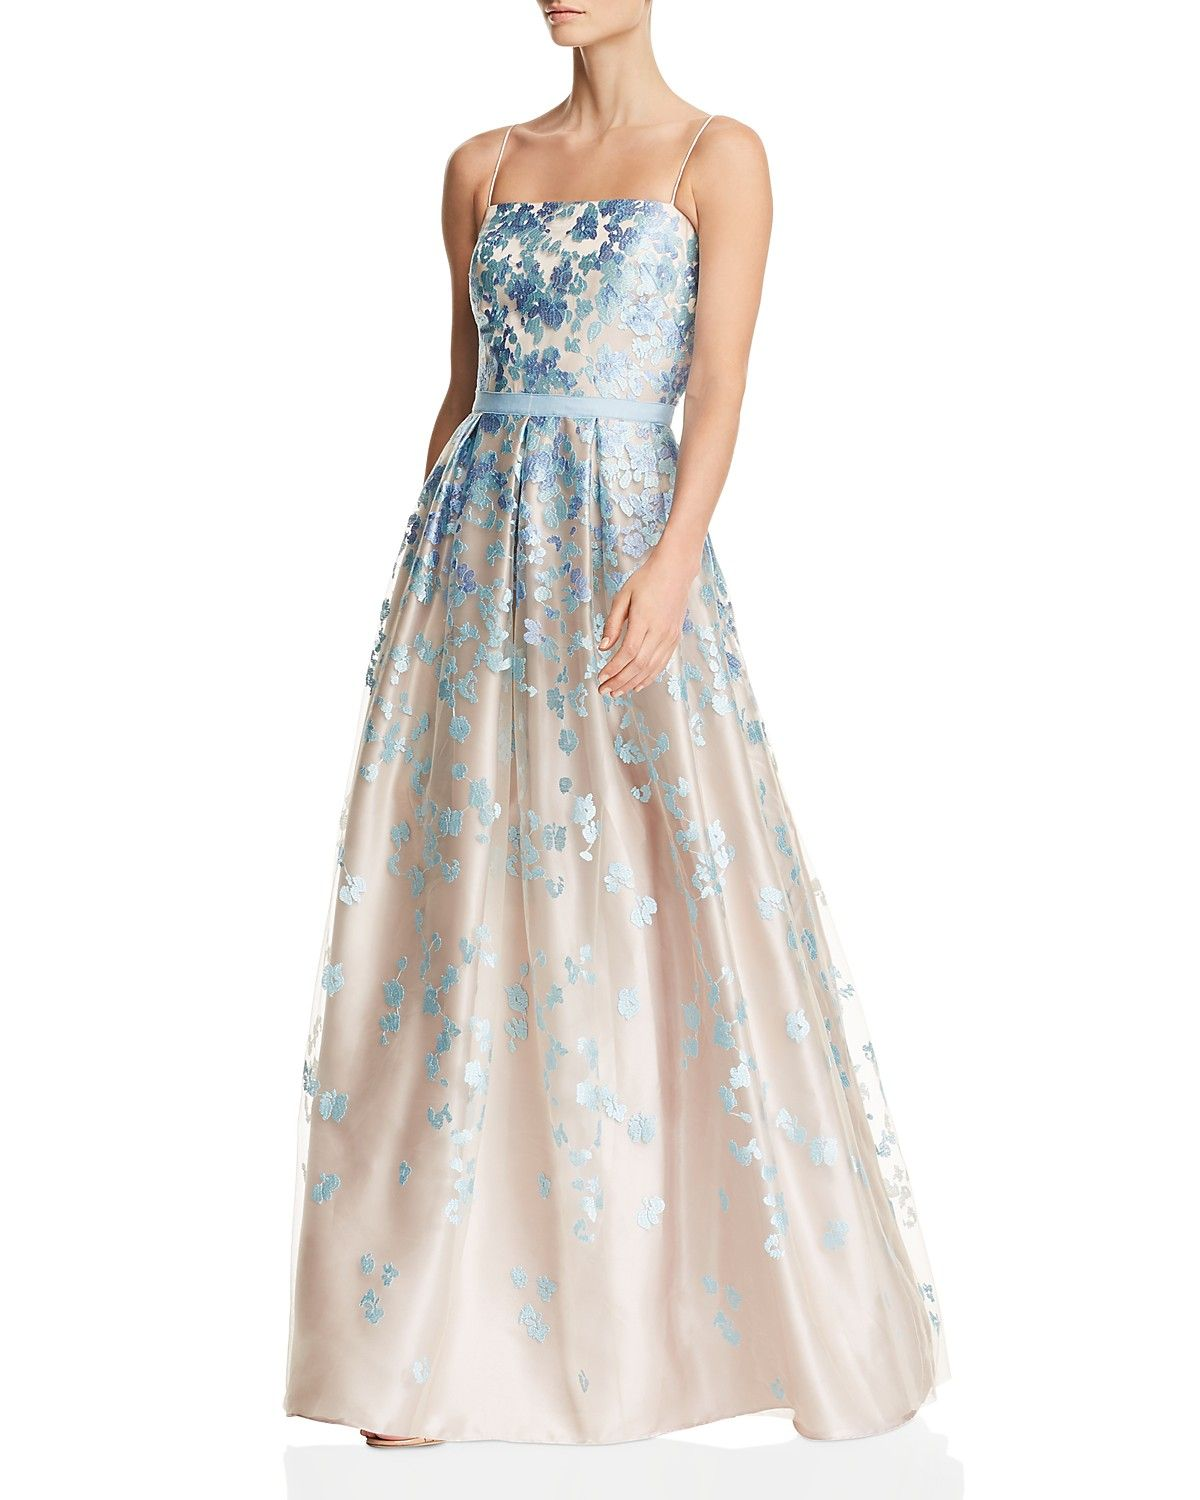 Eliza J Floral Ball Gown Women   Bloomingdale's   Ball gowns ...